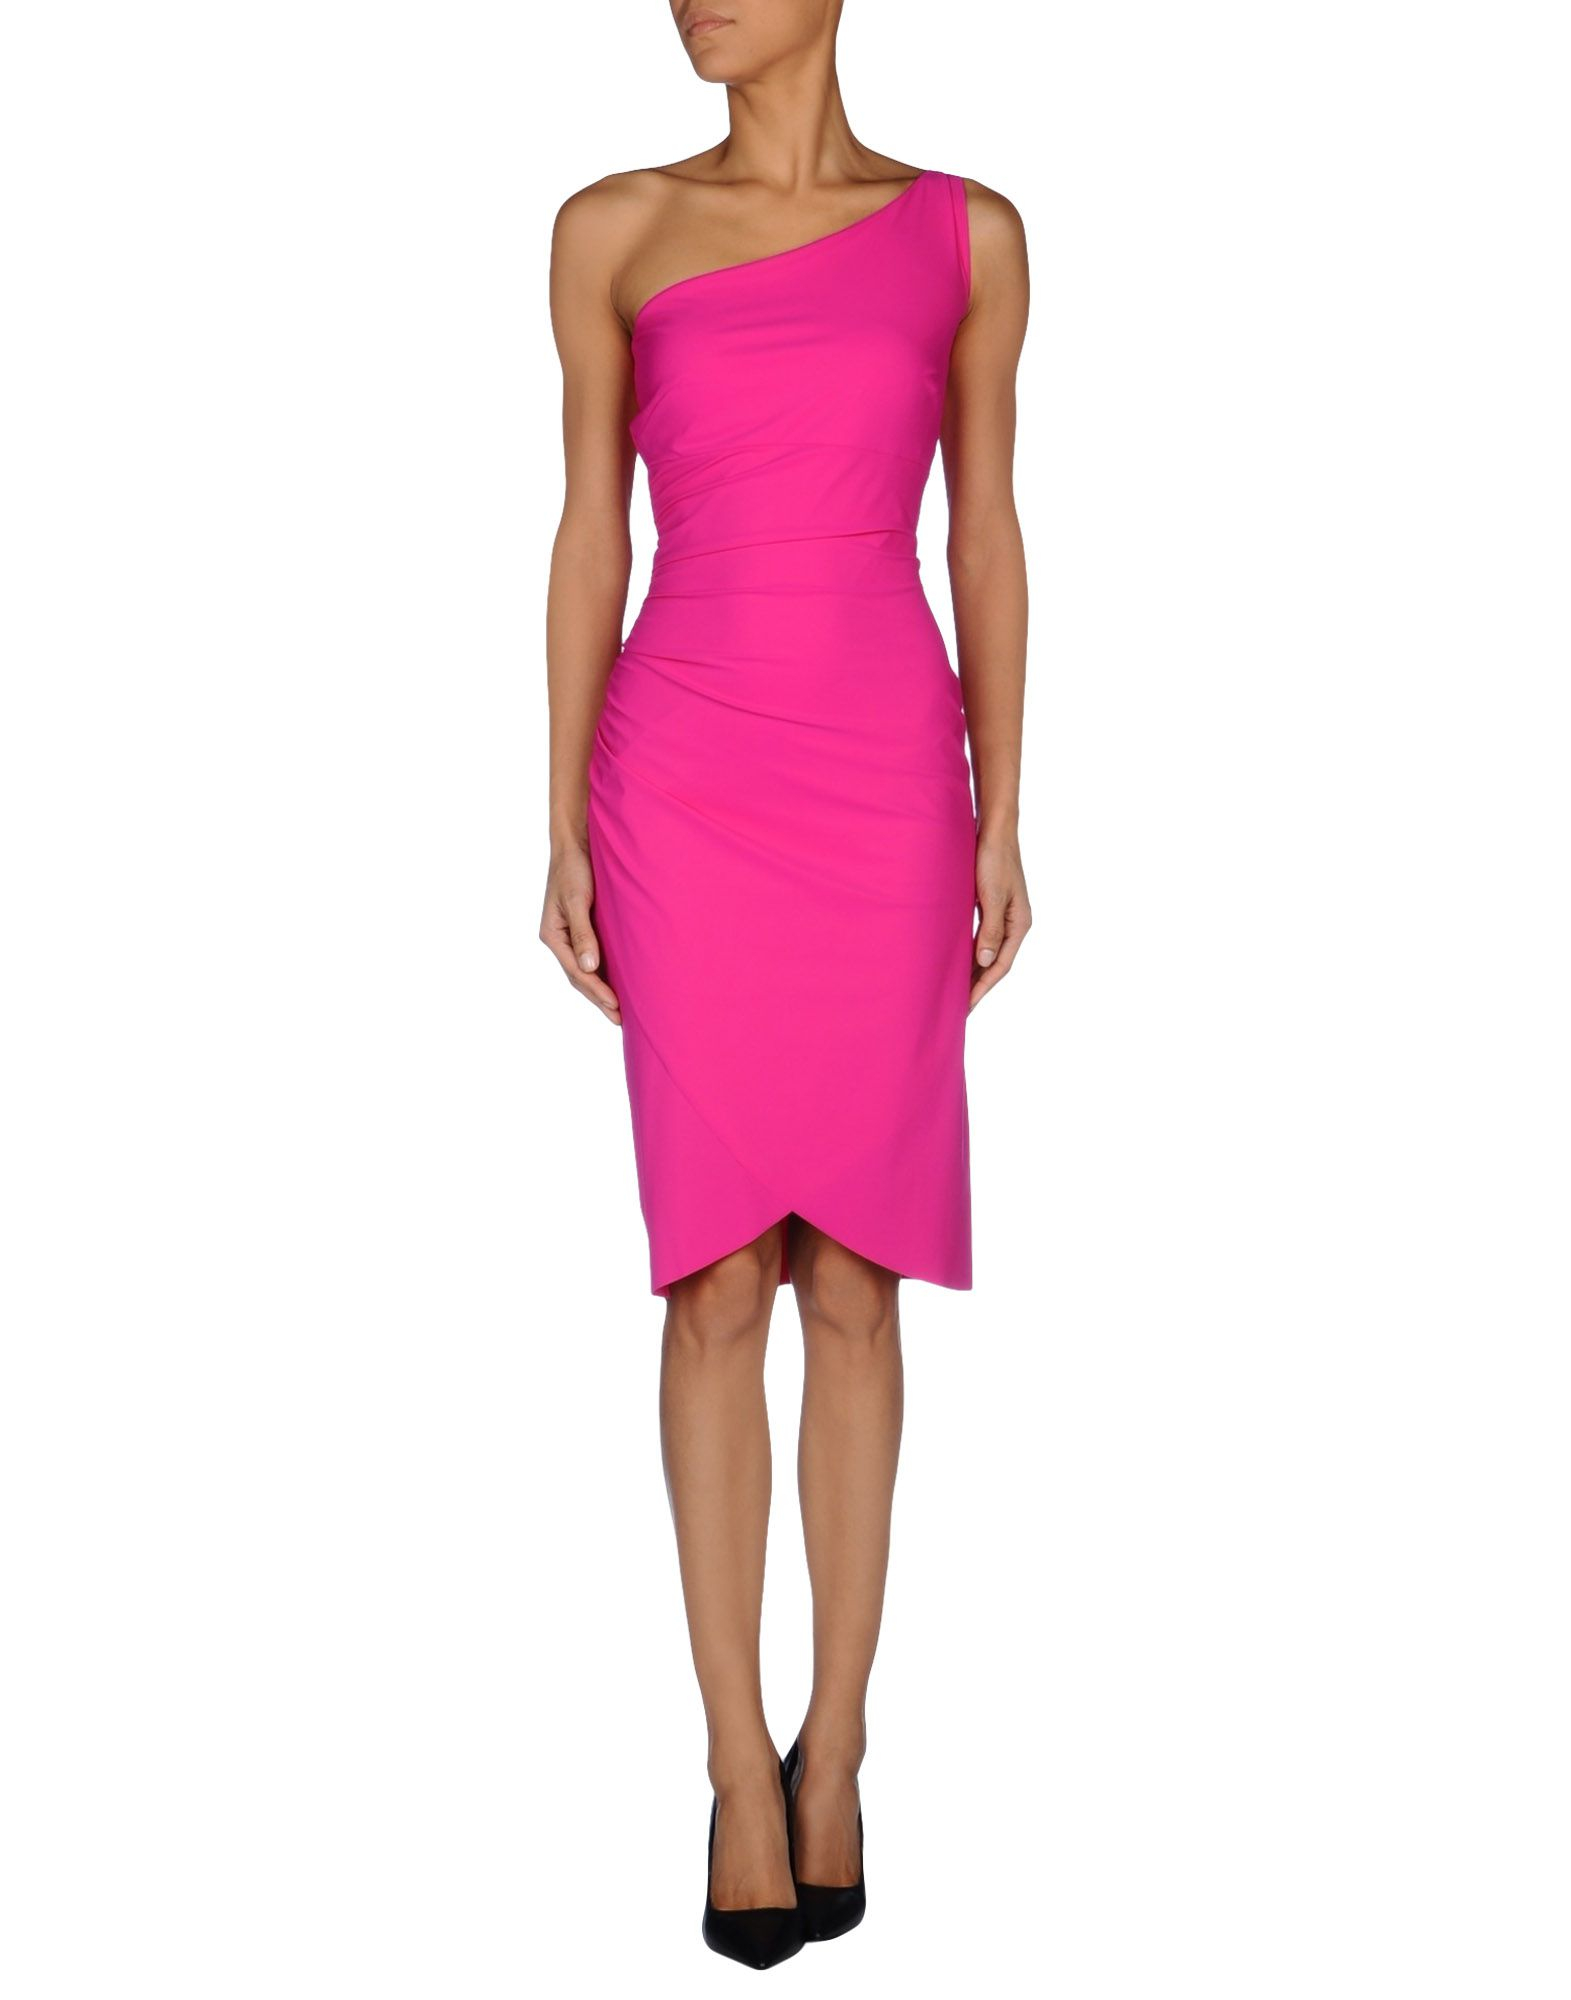 Chiara Boni The Most Popular Dress In America: La Petite Robe Di Chiara Boni Knee-Length Dress In Purple